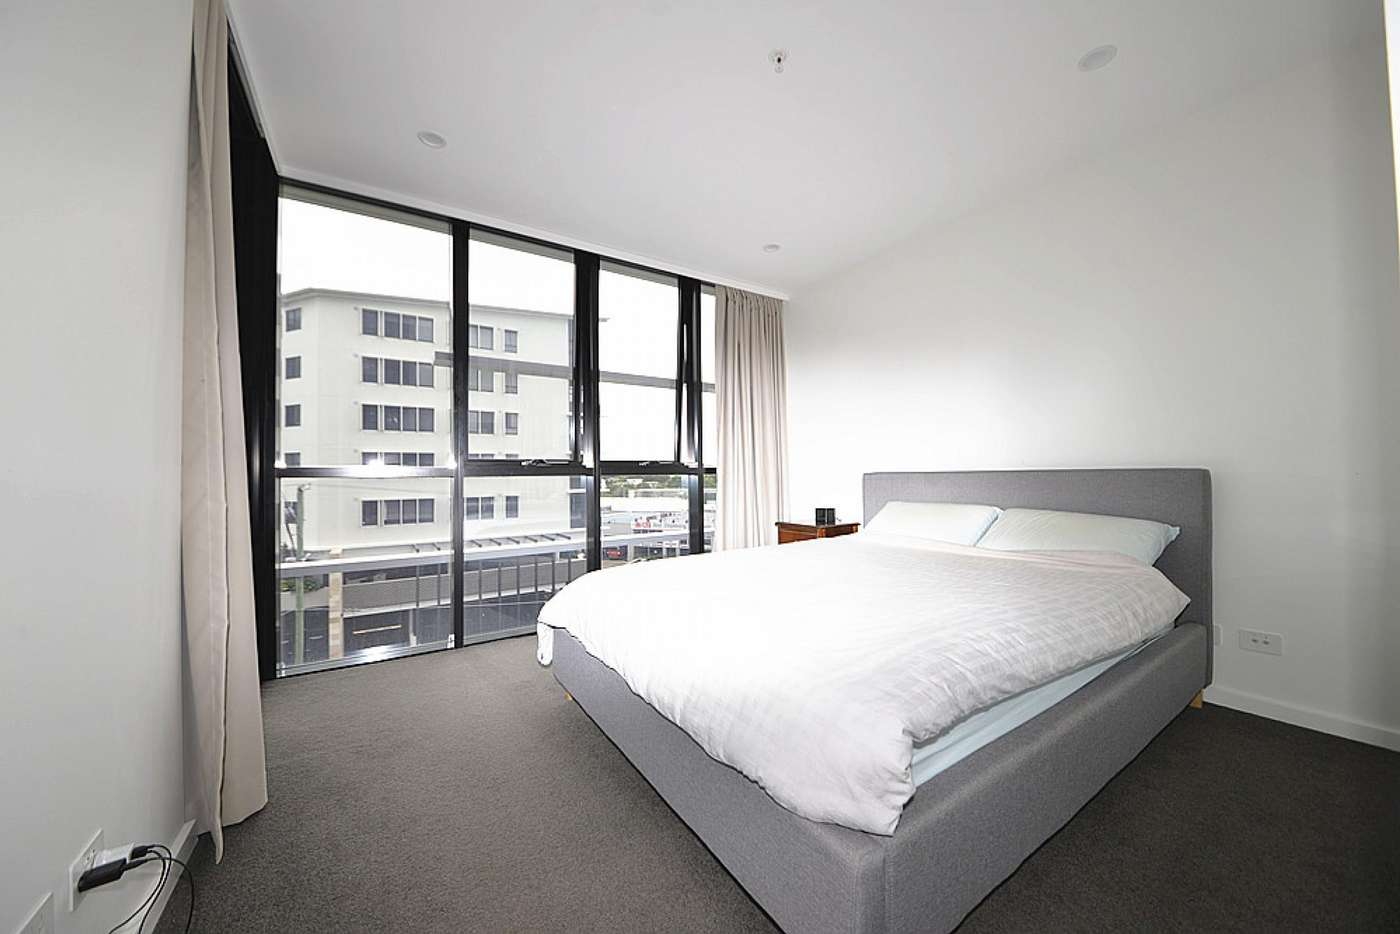 Seventh view of Homely apartment listing, 307/148 Logan Rd, Woolloongabba QLD 4102